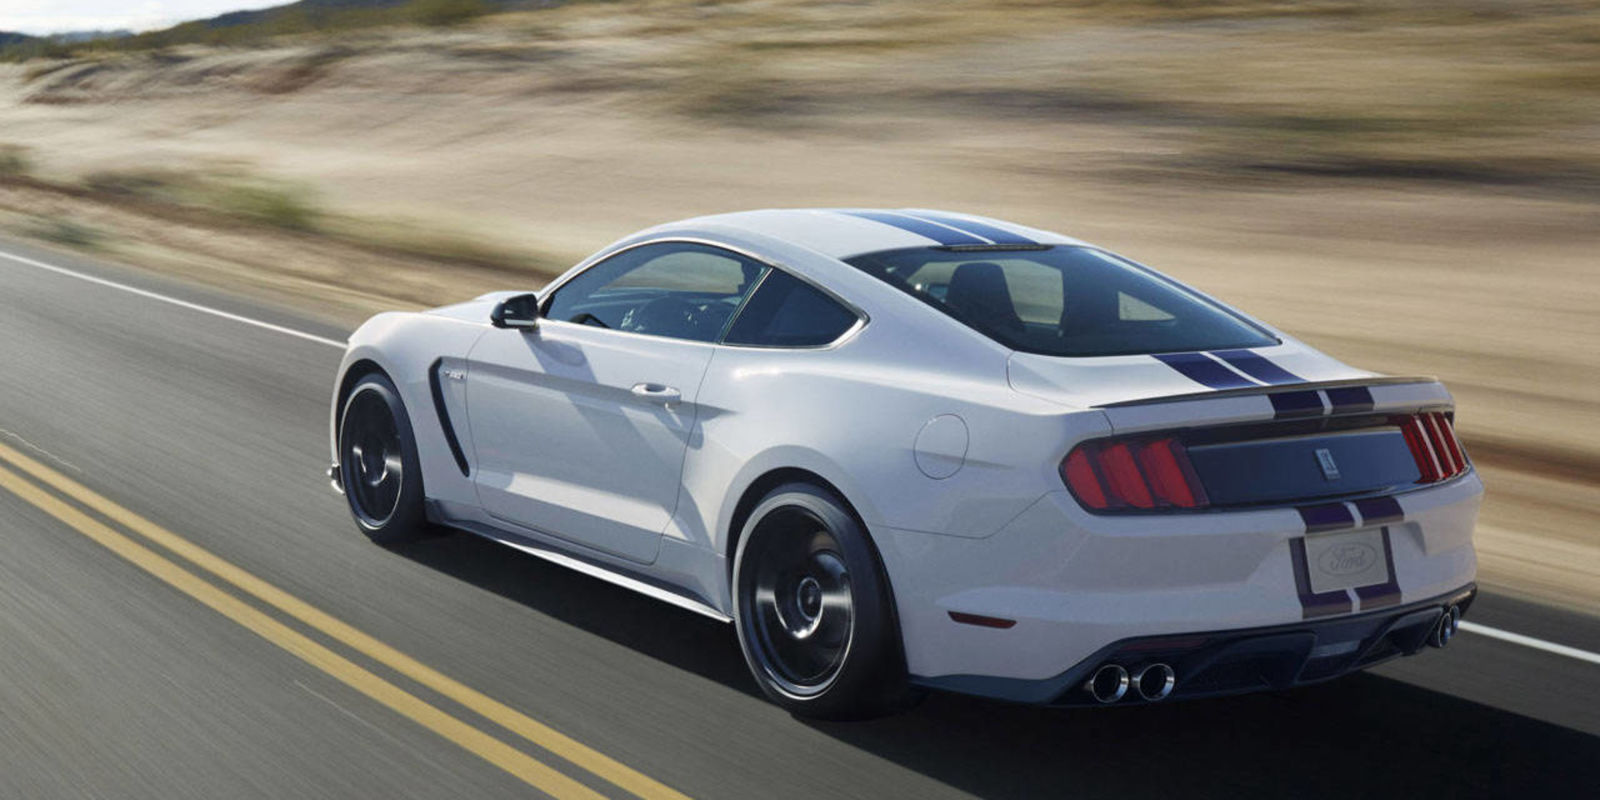 2019 Ford Mustang Shelby GT350 photo - 1